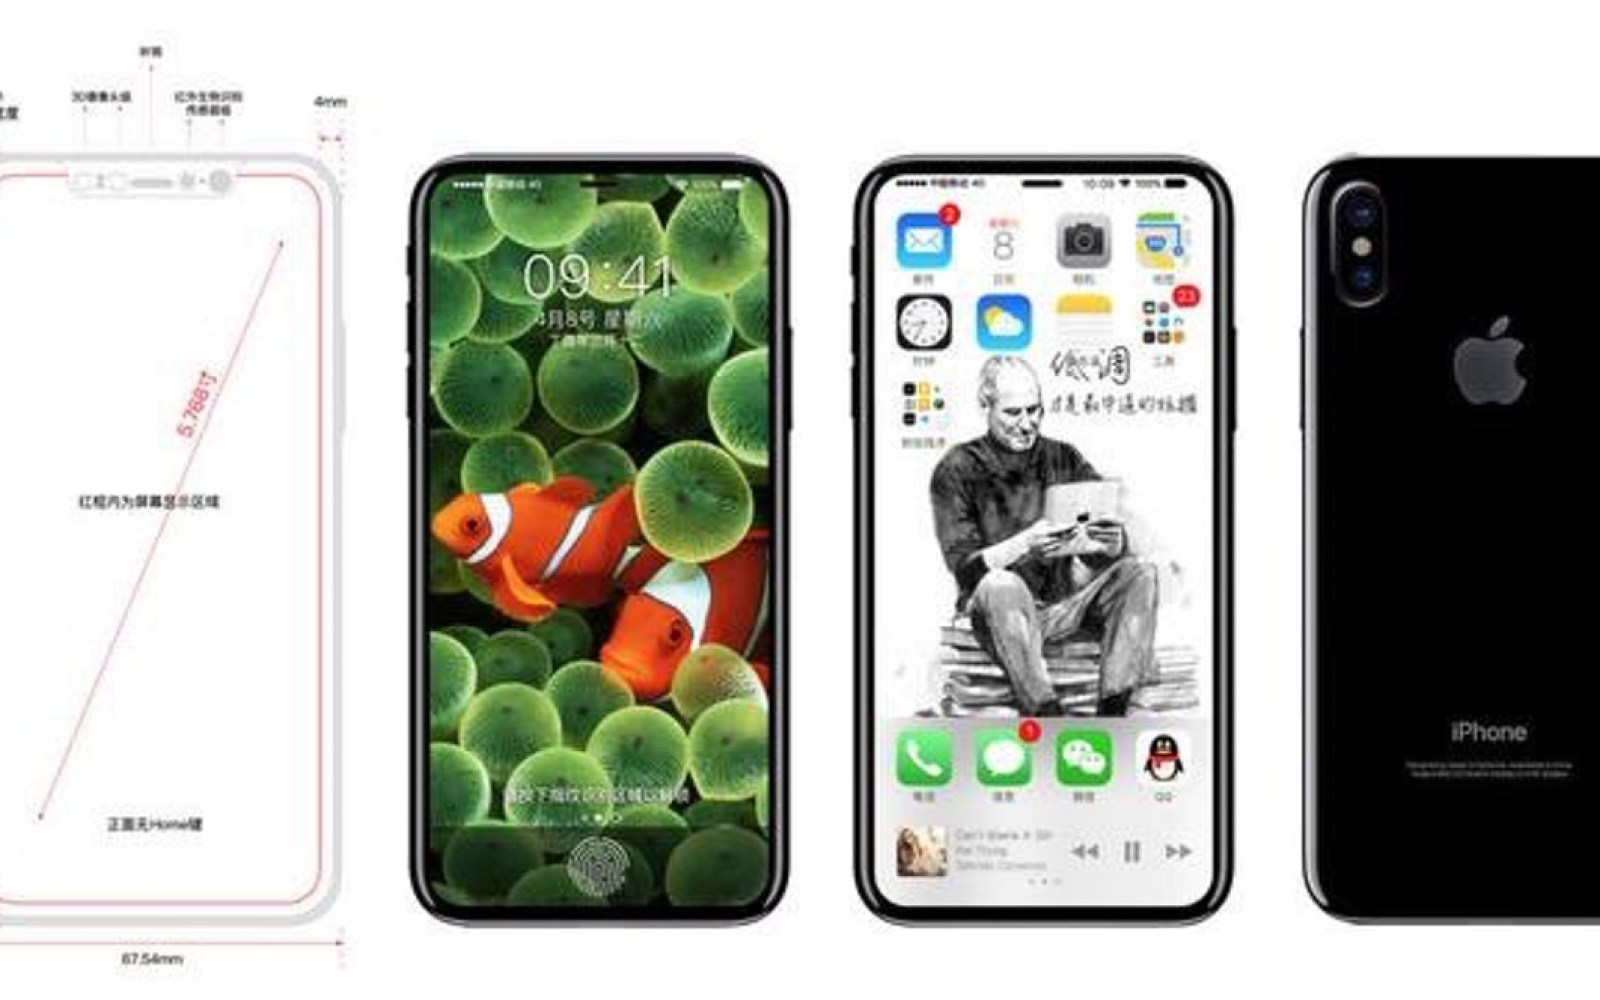 Sketchy drawings depict bezel-less iPhone 8 with Home Button, camera and speaker integrated behind screen